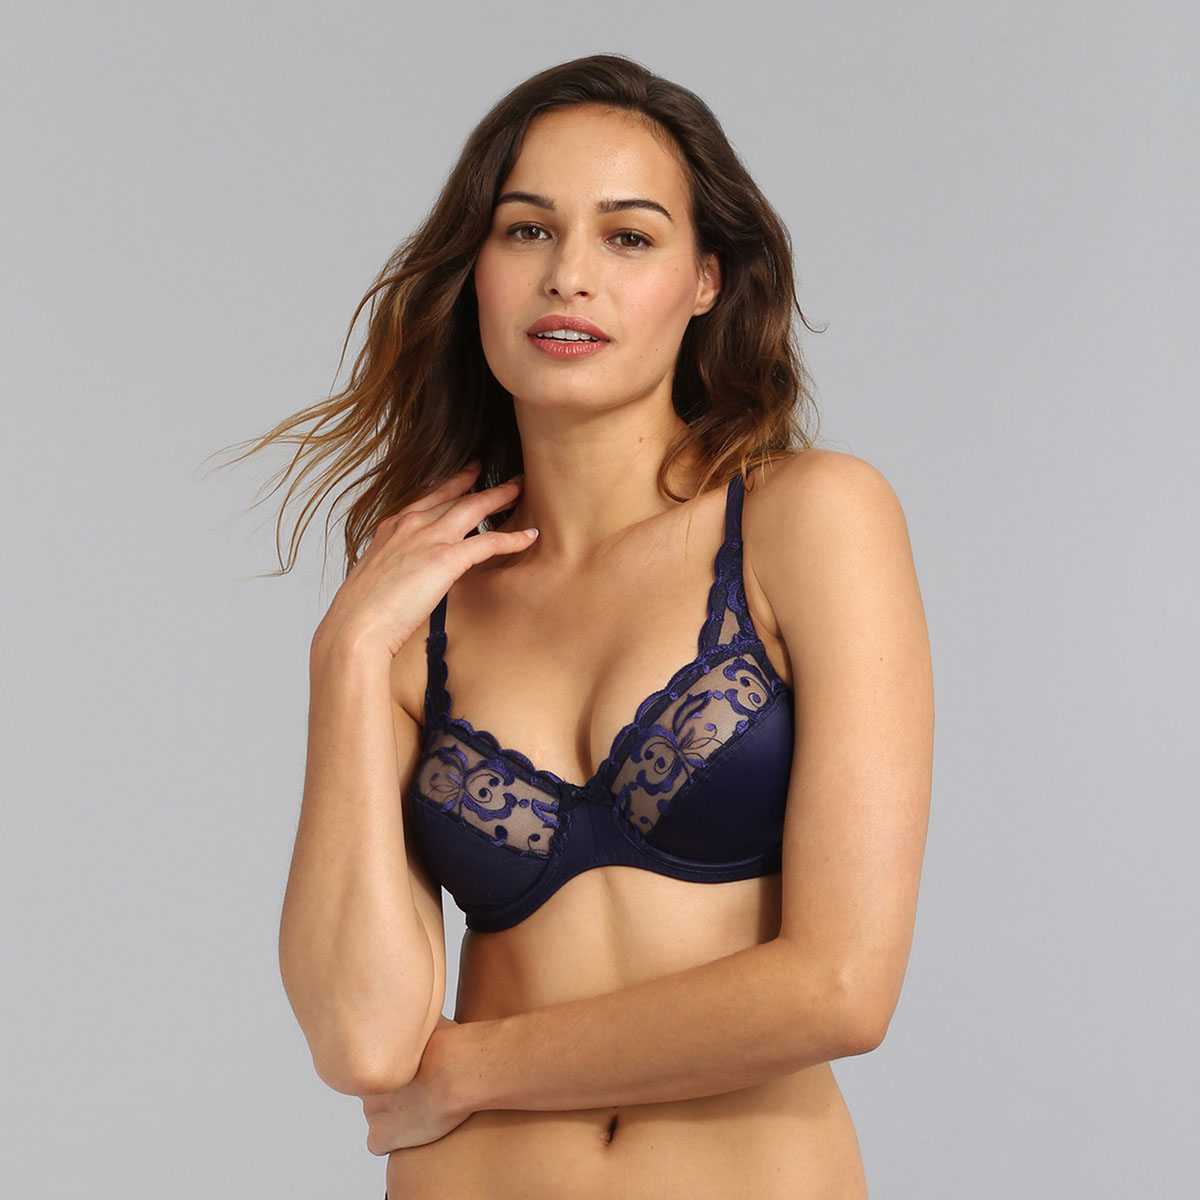 Underwired bra in navy Essential Elegance Embroidery, , PLAYTEX